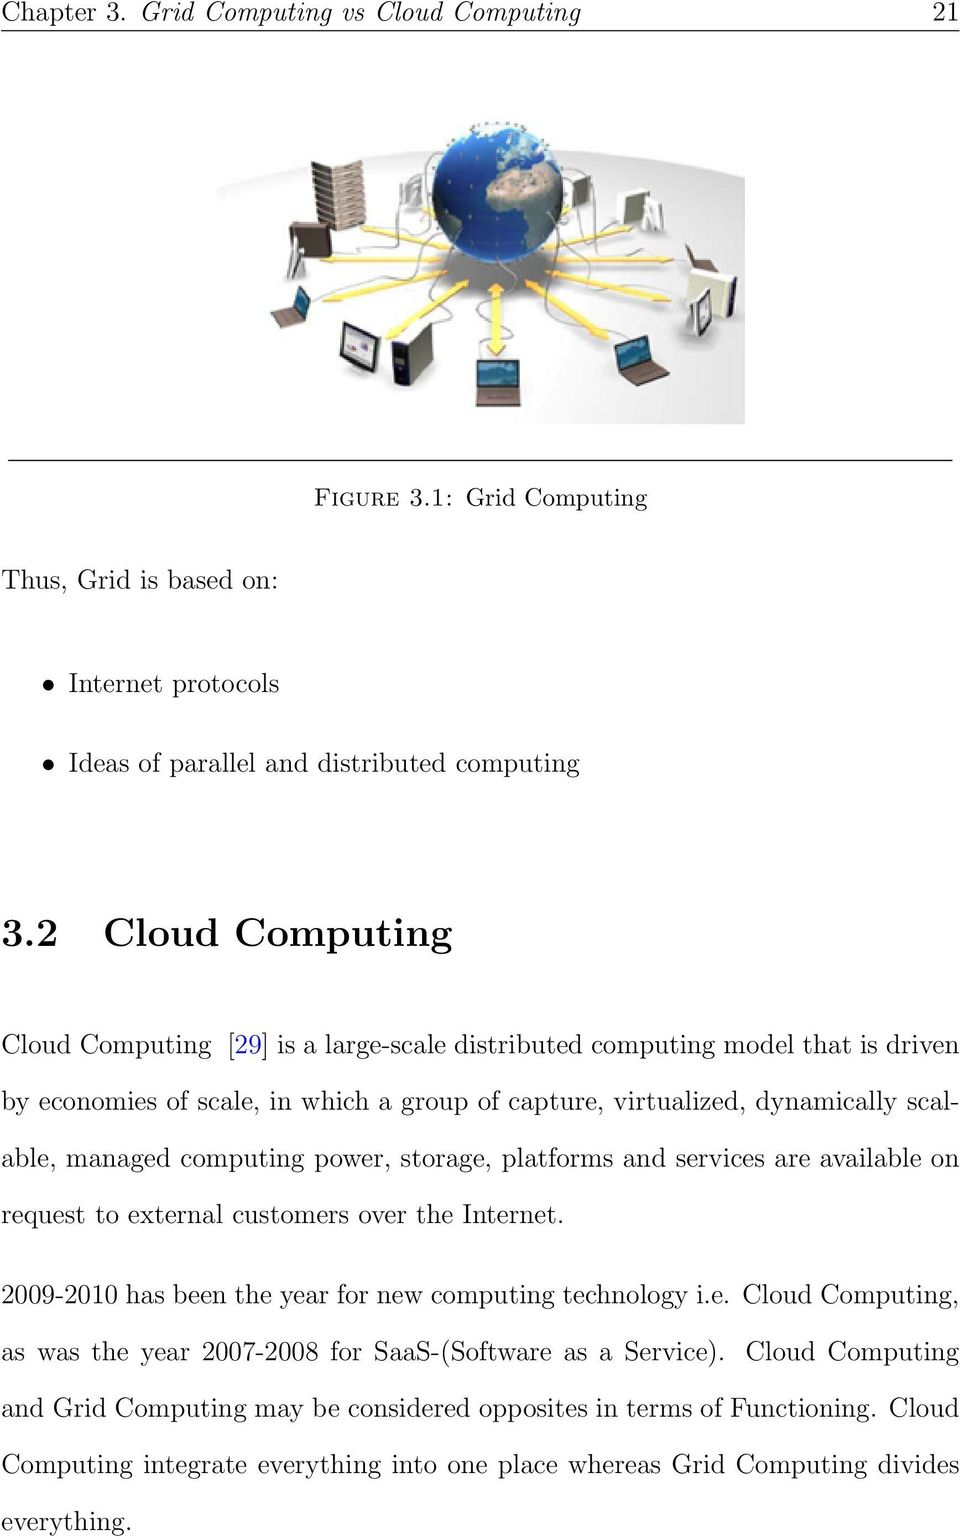 computing power, storage, platforms and services are available on request to external customers over the Internet. 2009-2010 has been the year for new computing technology i.e. Cloud Computing, as was the year 2007-2008 for SaaS-(Software as a Service).